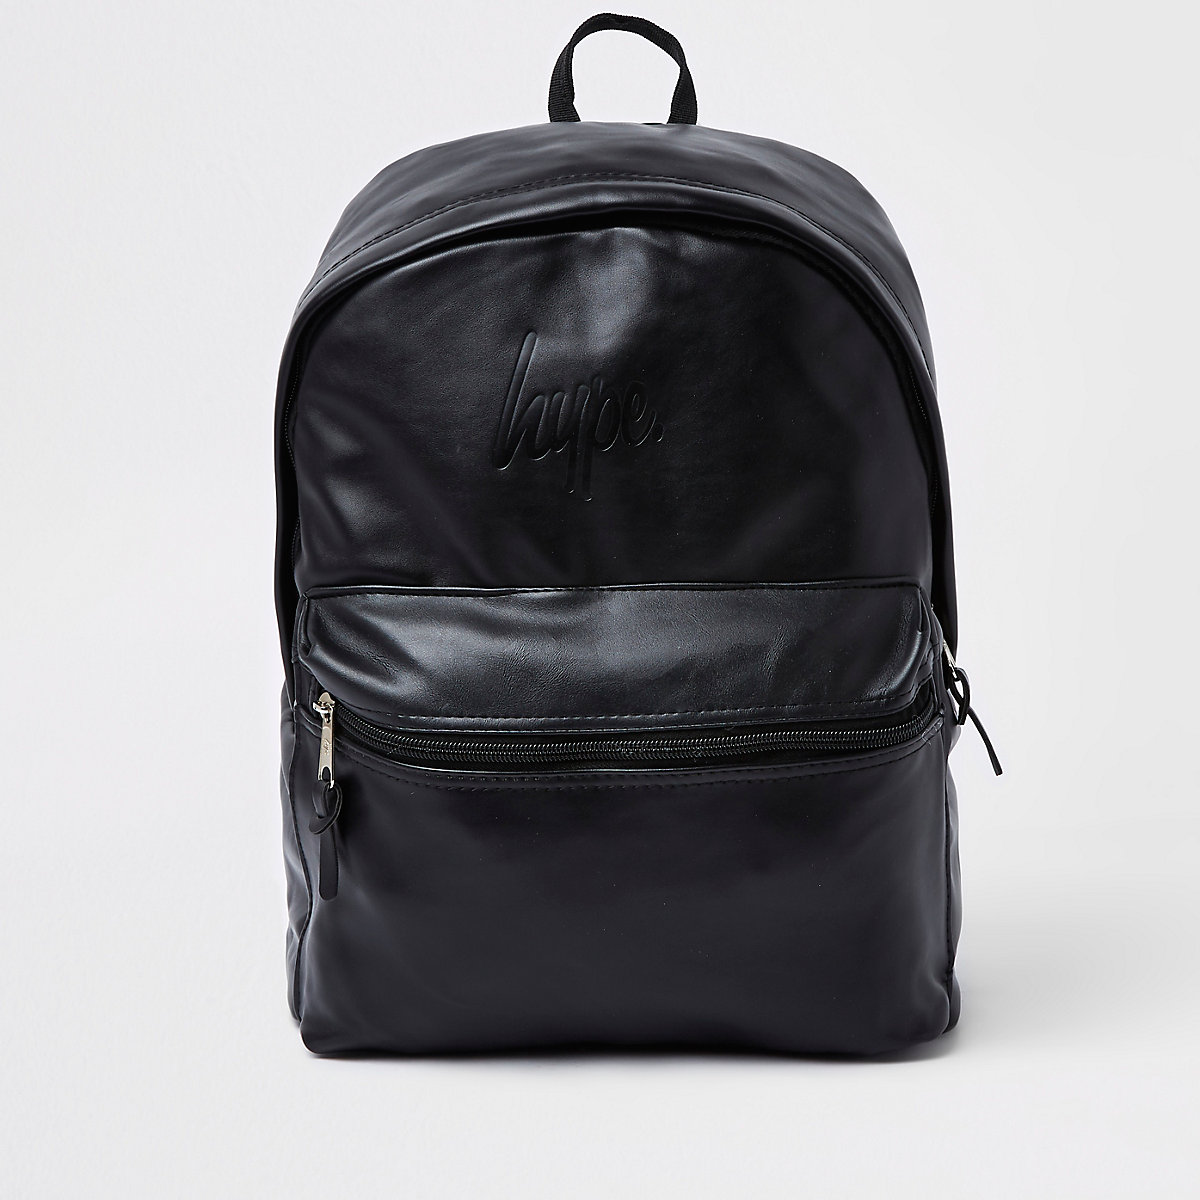 Hype black faux leather backpack